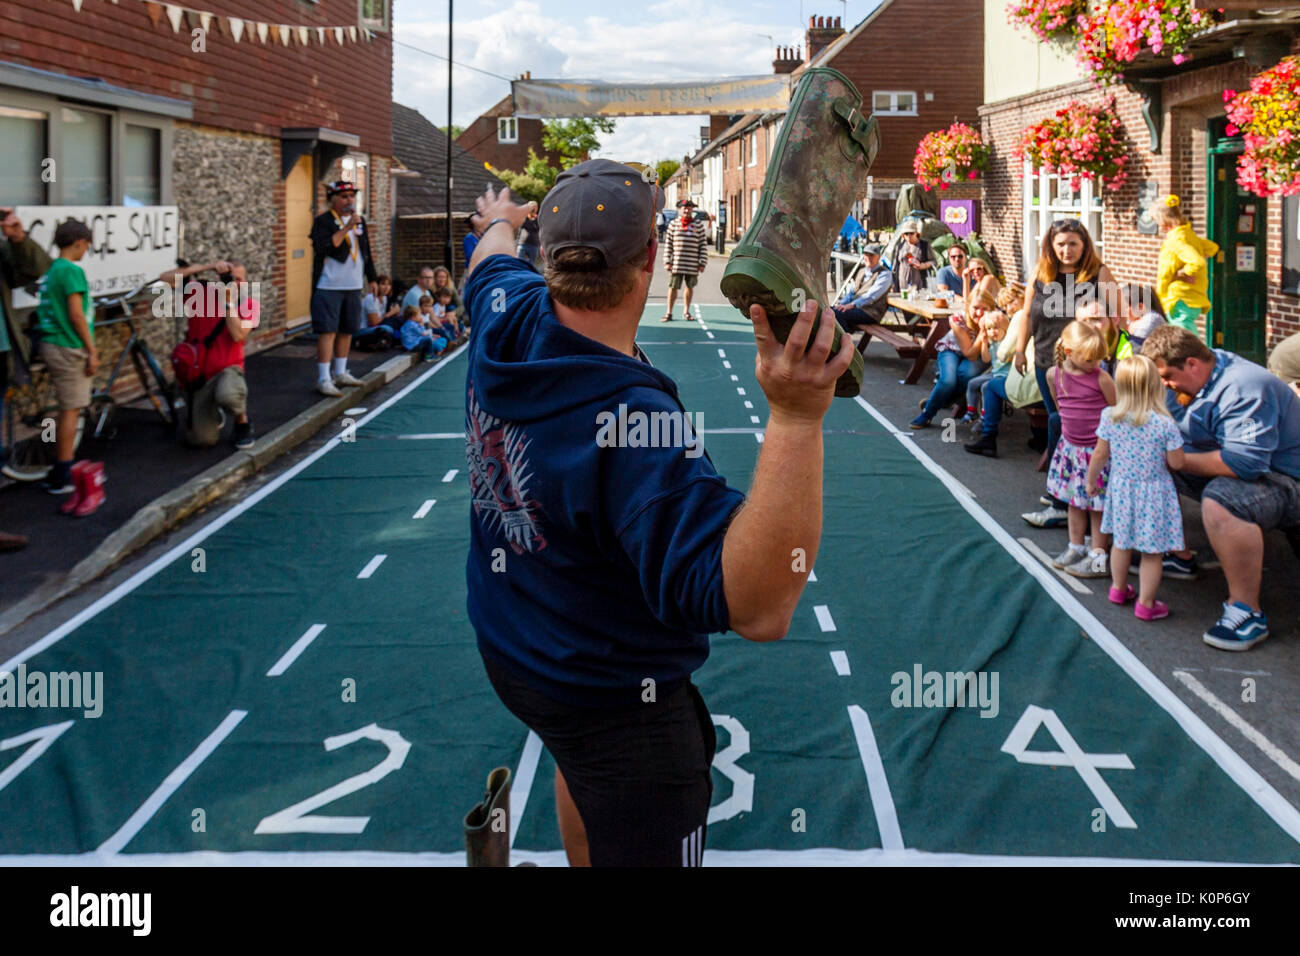 Local People Take Part In A 'Welly Throwing' Competition At The Annual South Street Sports Day and Dog Show, Lewes, East Sussex, UK - Stock Image